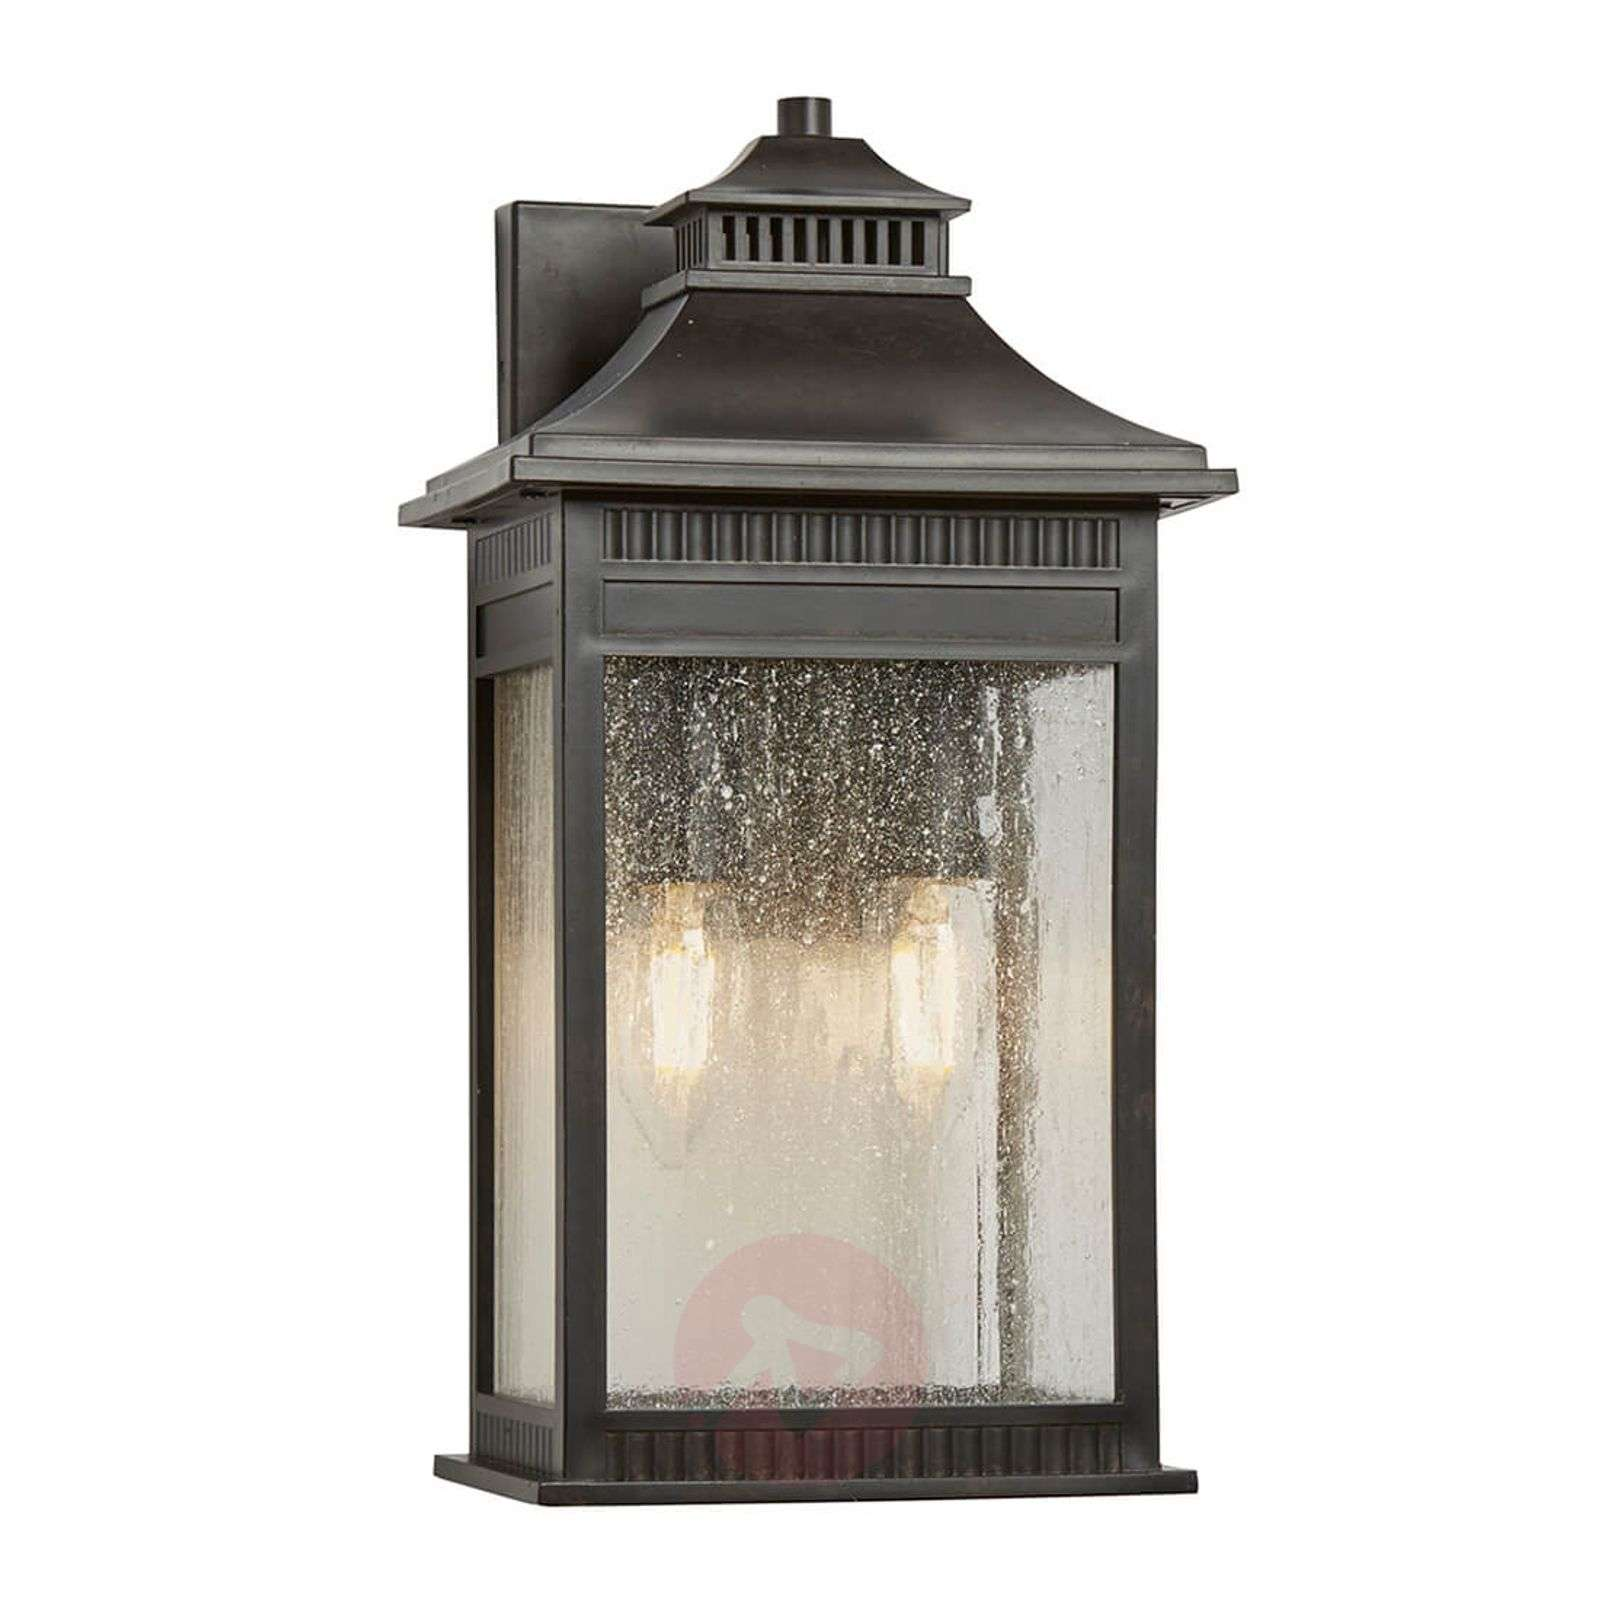 Livingston medium robust outdoor wall lamp-3048826-01